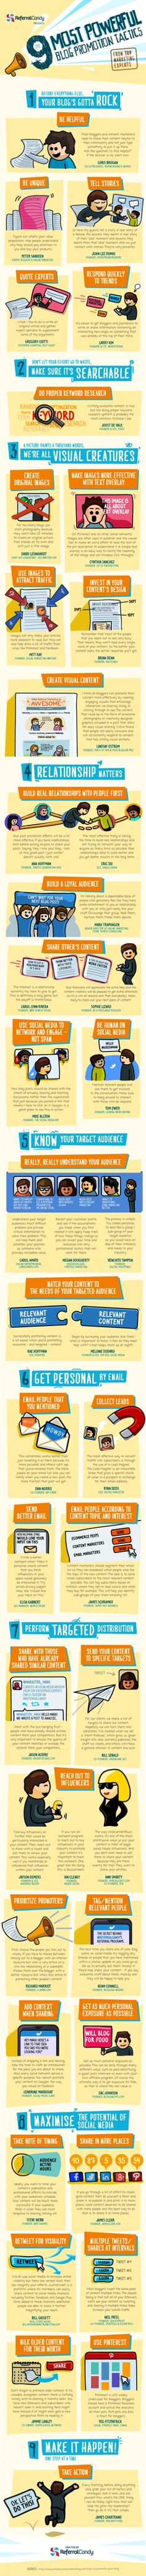 The 9 Most Powerful Blog Promotion Tactics From Top Marketing Experts #Blogging #ContentlMarketingTips #Infographic Source: http://blog.referralcandy.com/2014/05/26/9-powerful-blog-promotion-tactics-top-marketing-experts-infographic/